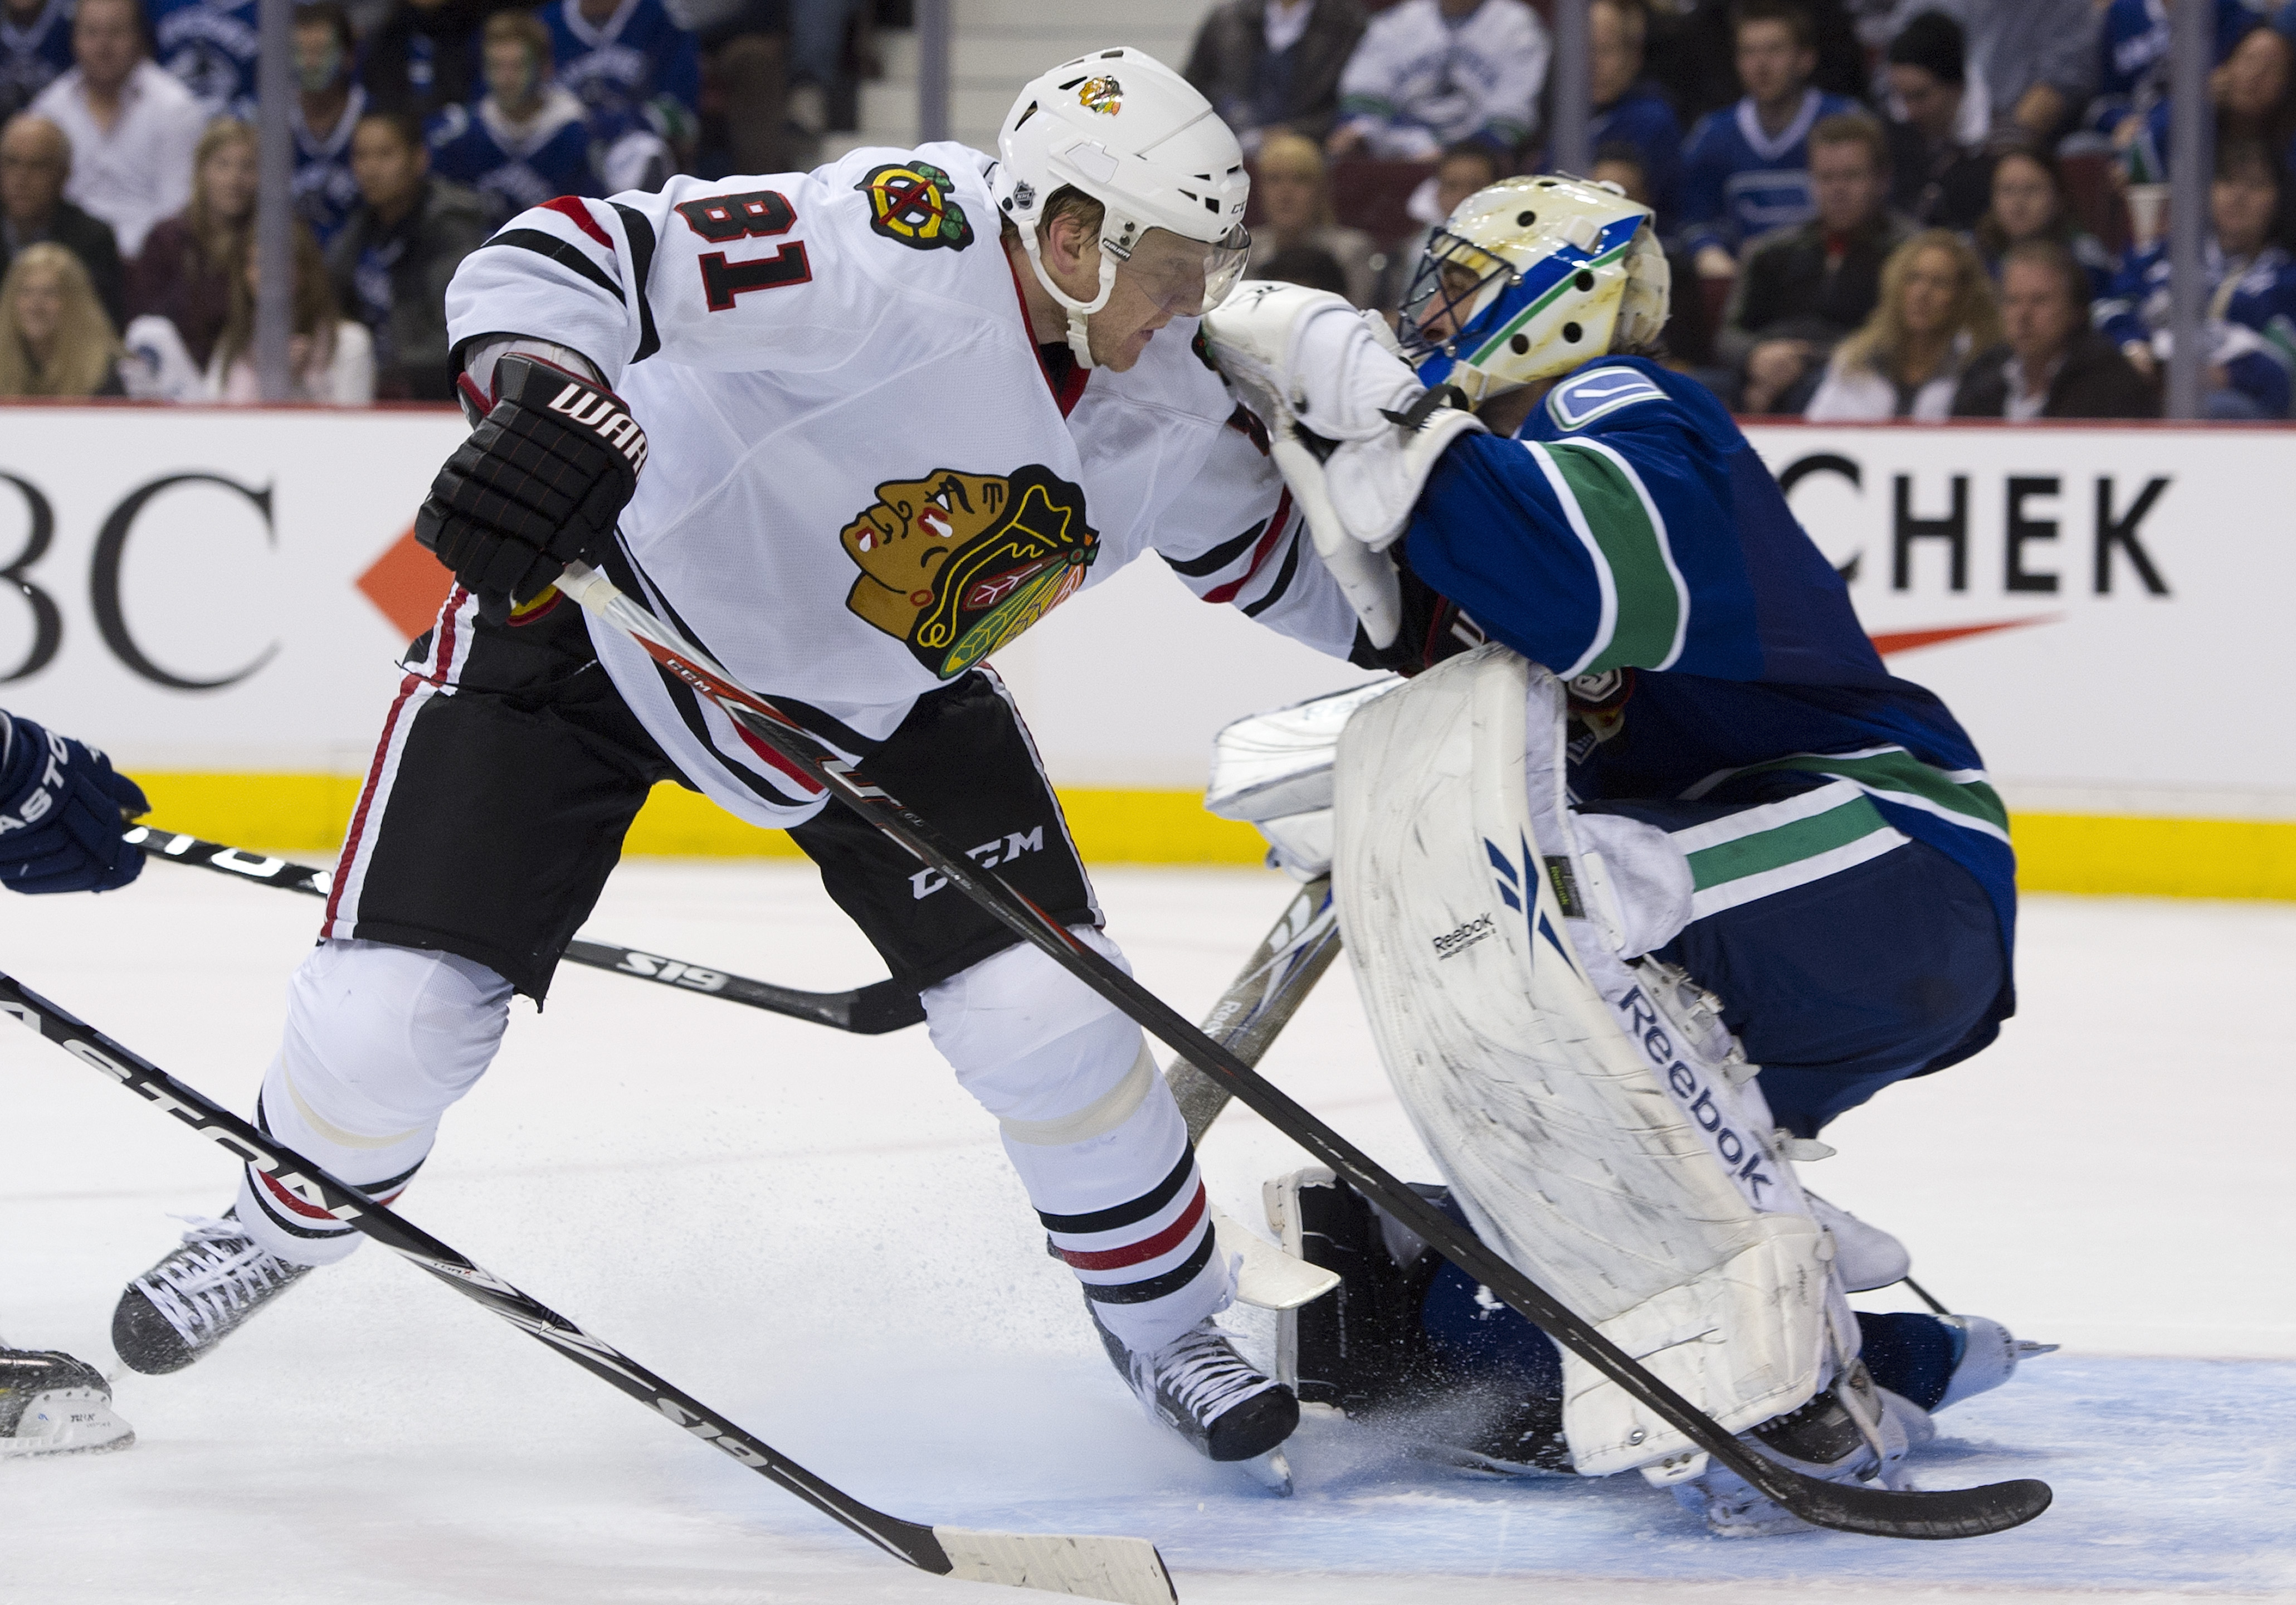 VANCOUVER, CANADA - APRIL 13: Marian Hossa #81 of the Chicago Blackhawks skates into goalie Roberto Luongo #1 after getting pushed during the third period in Game One of the Western Conference Quarterfinals during the 2011 NHL Stanley Cup Playoffs on Apri